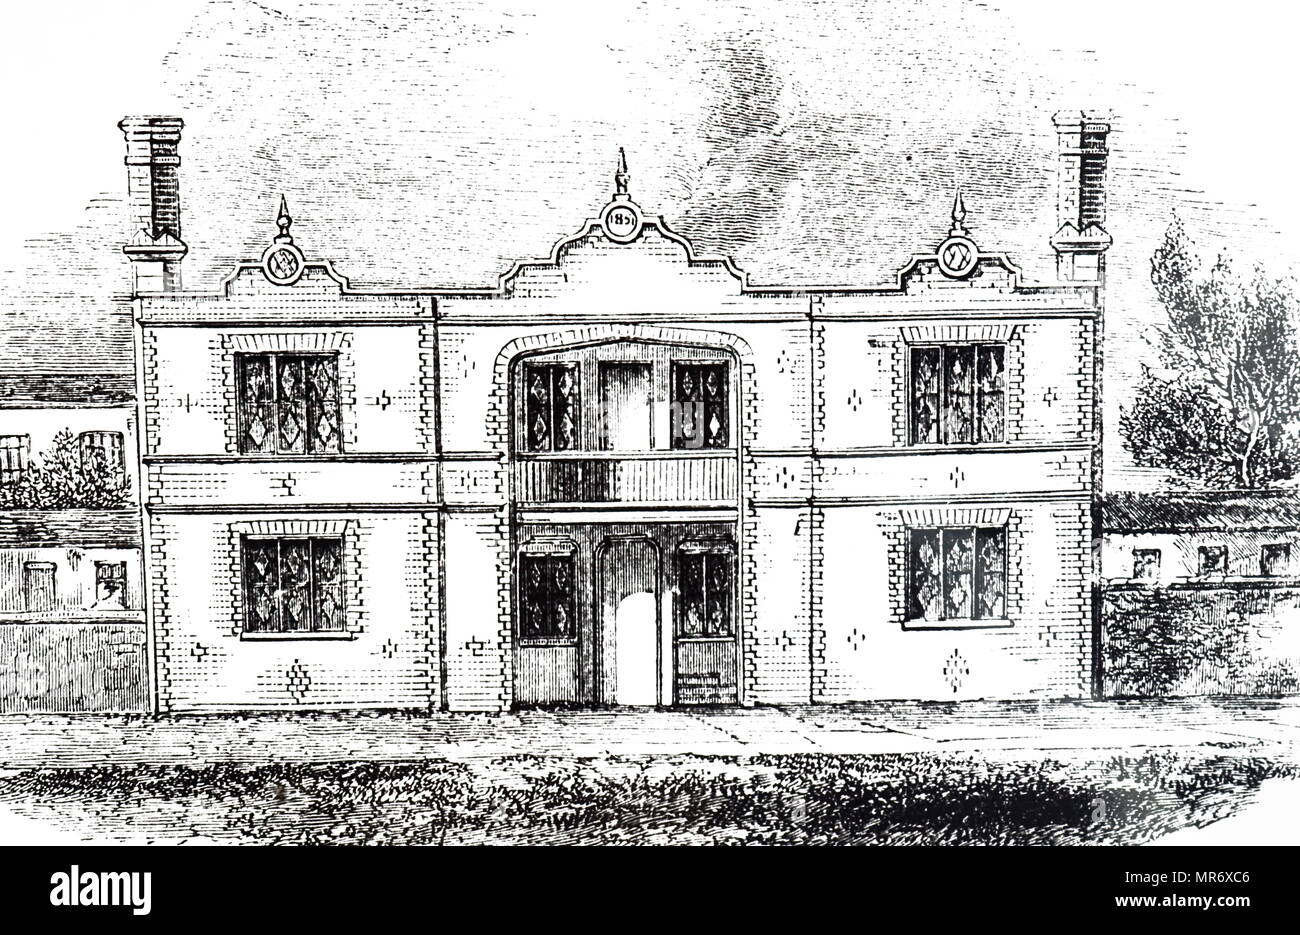 Engraving depicting Prince Albert's model dwelling for the labouring classes, designed for four families. Each occupying a flat. Dated 19th century - Stock Image